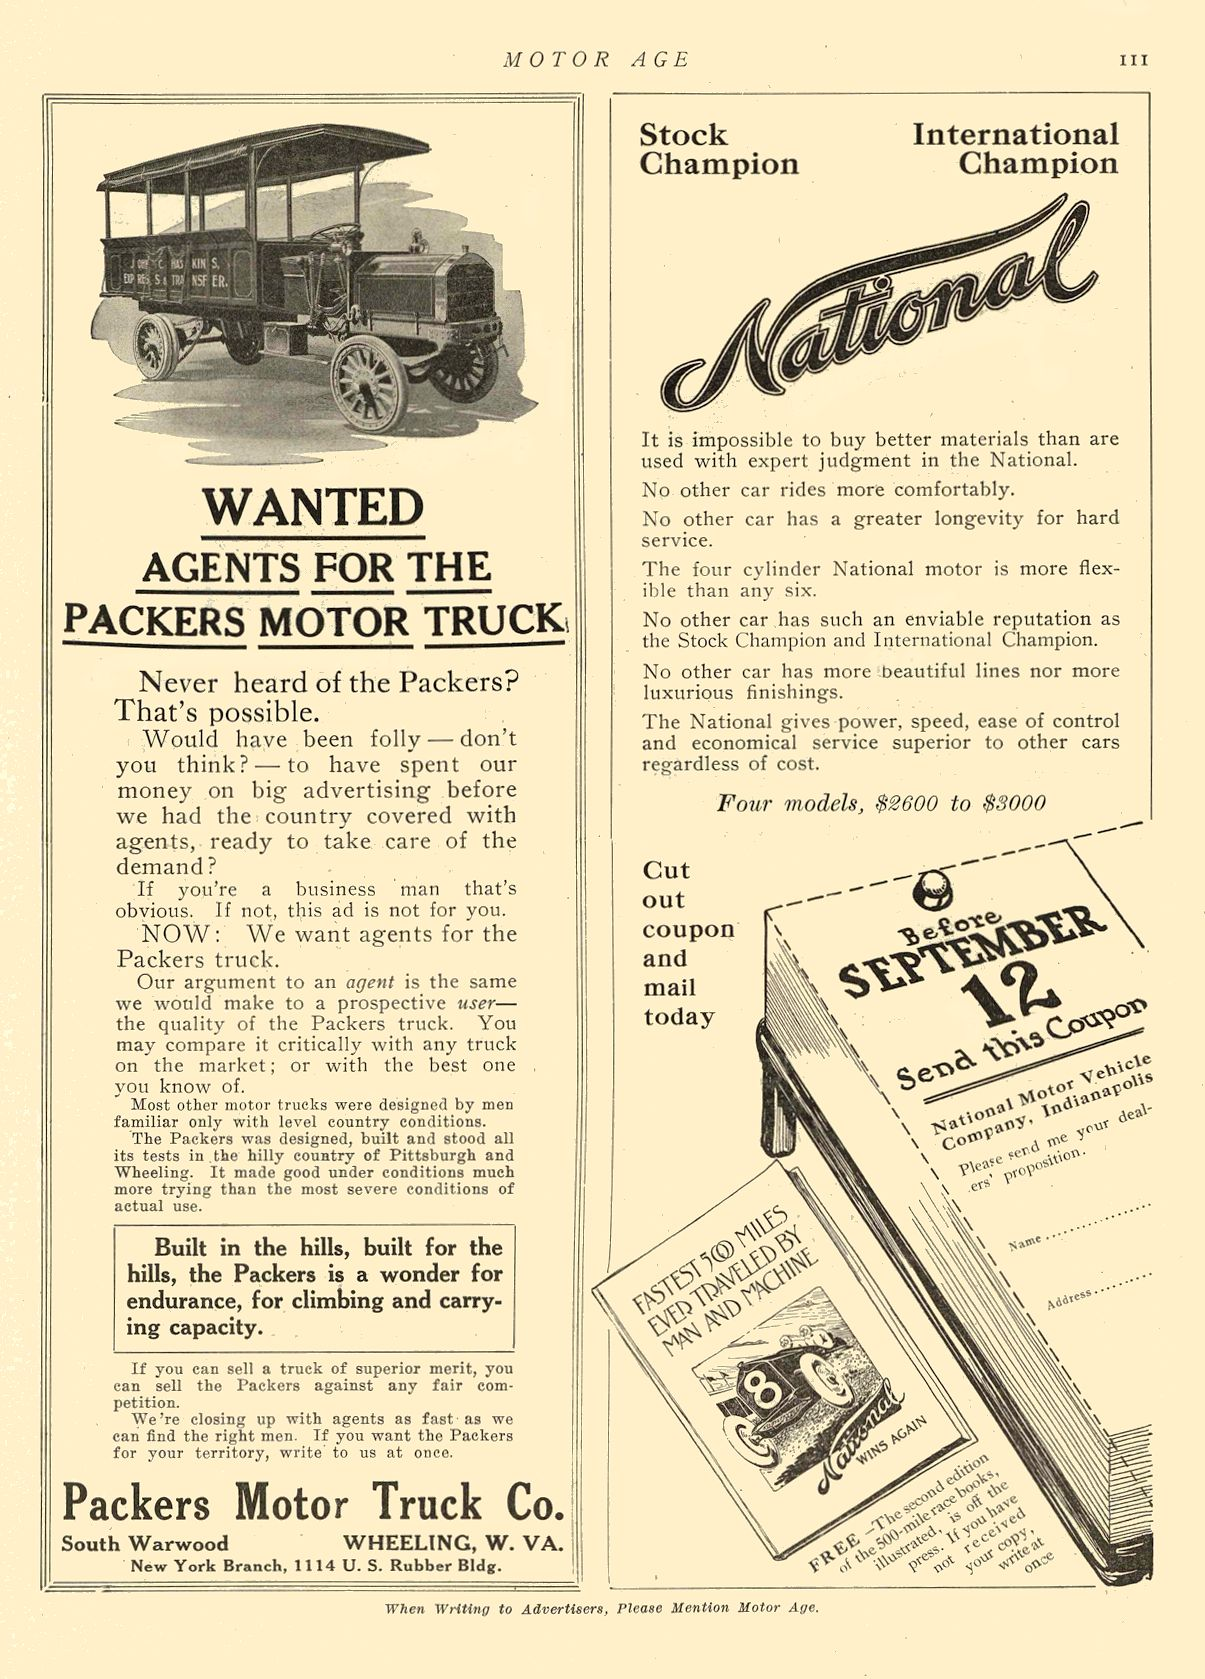 1912 9 5 NATIONAL National Before SEPTEMBER 12 National Motor Vehicle Company Indianapolis, IND MOTOR AGE September 5, 1912 8.5″x11.5″ page 111